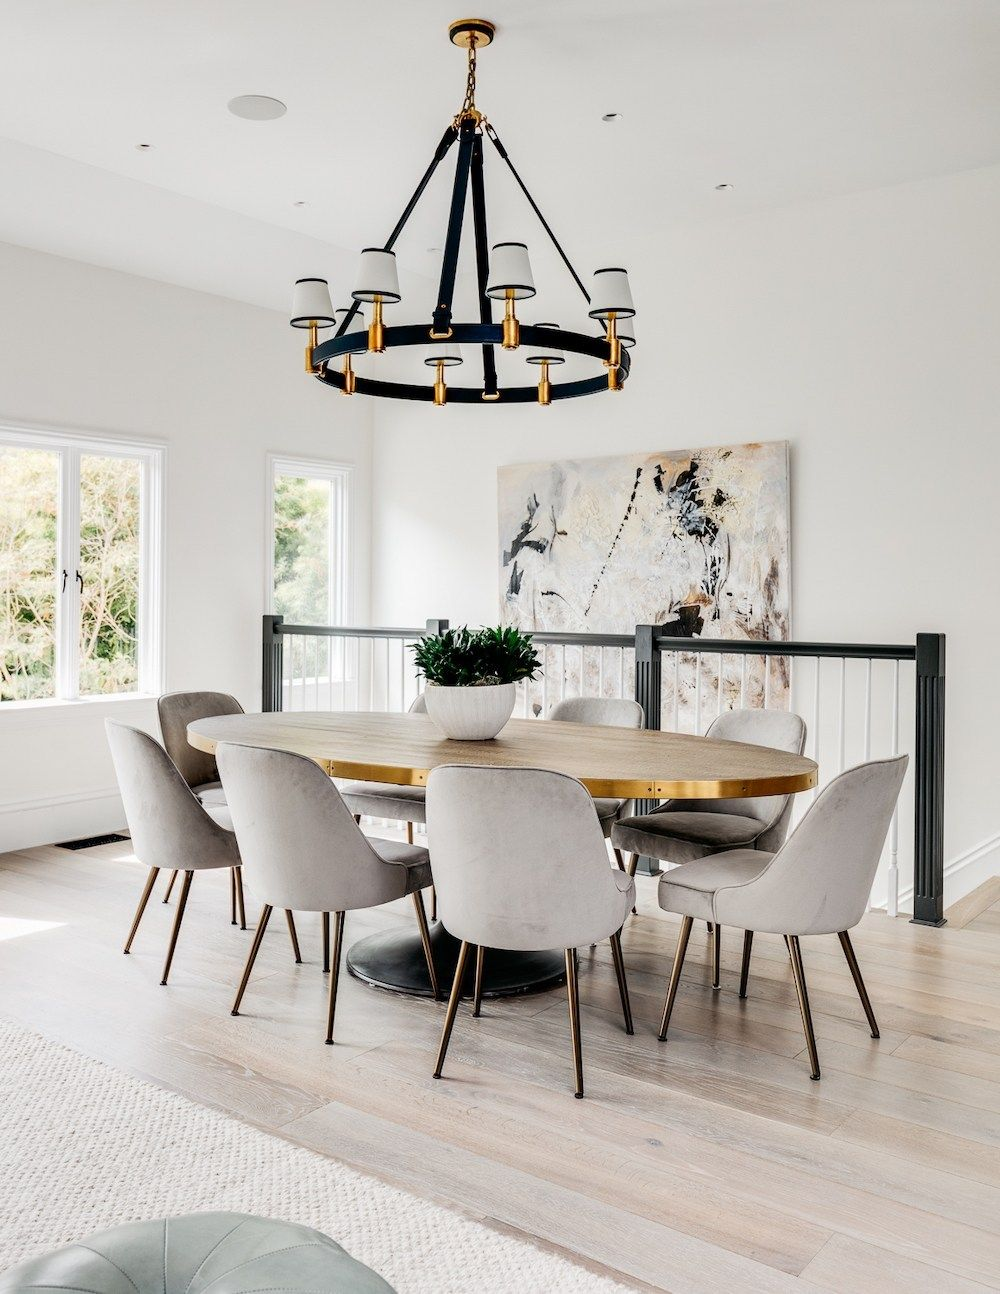 Oval Dining Table Modern White Interior House From Full House Dining Room Modern Dining Table Oval Table Dining White House Interior